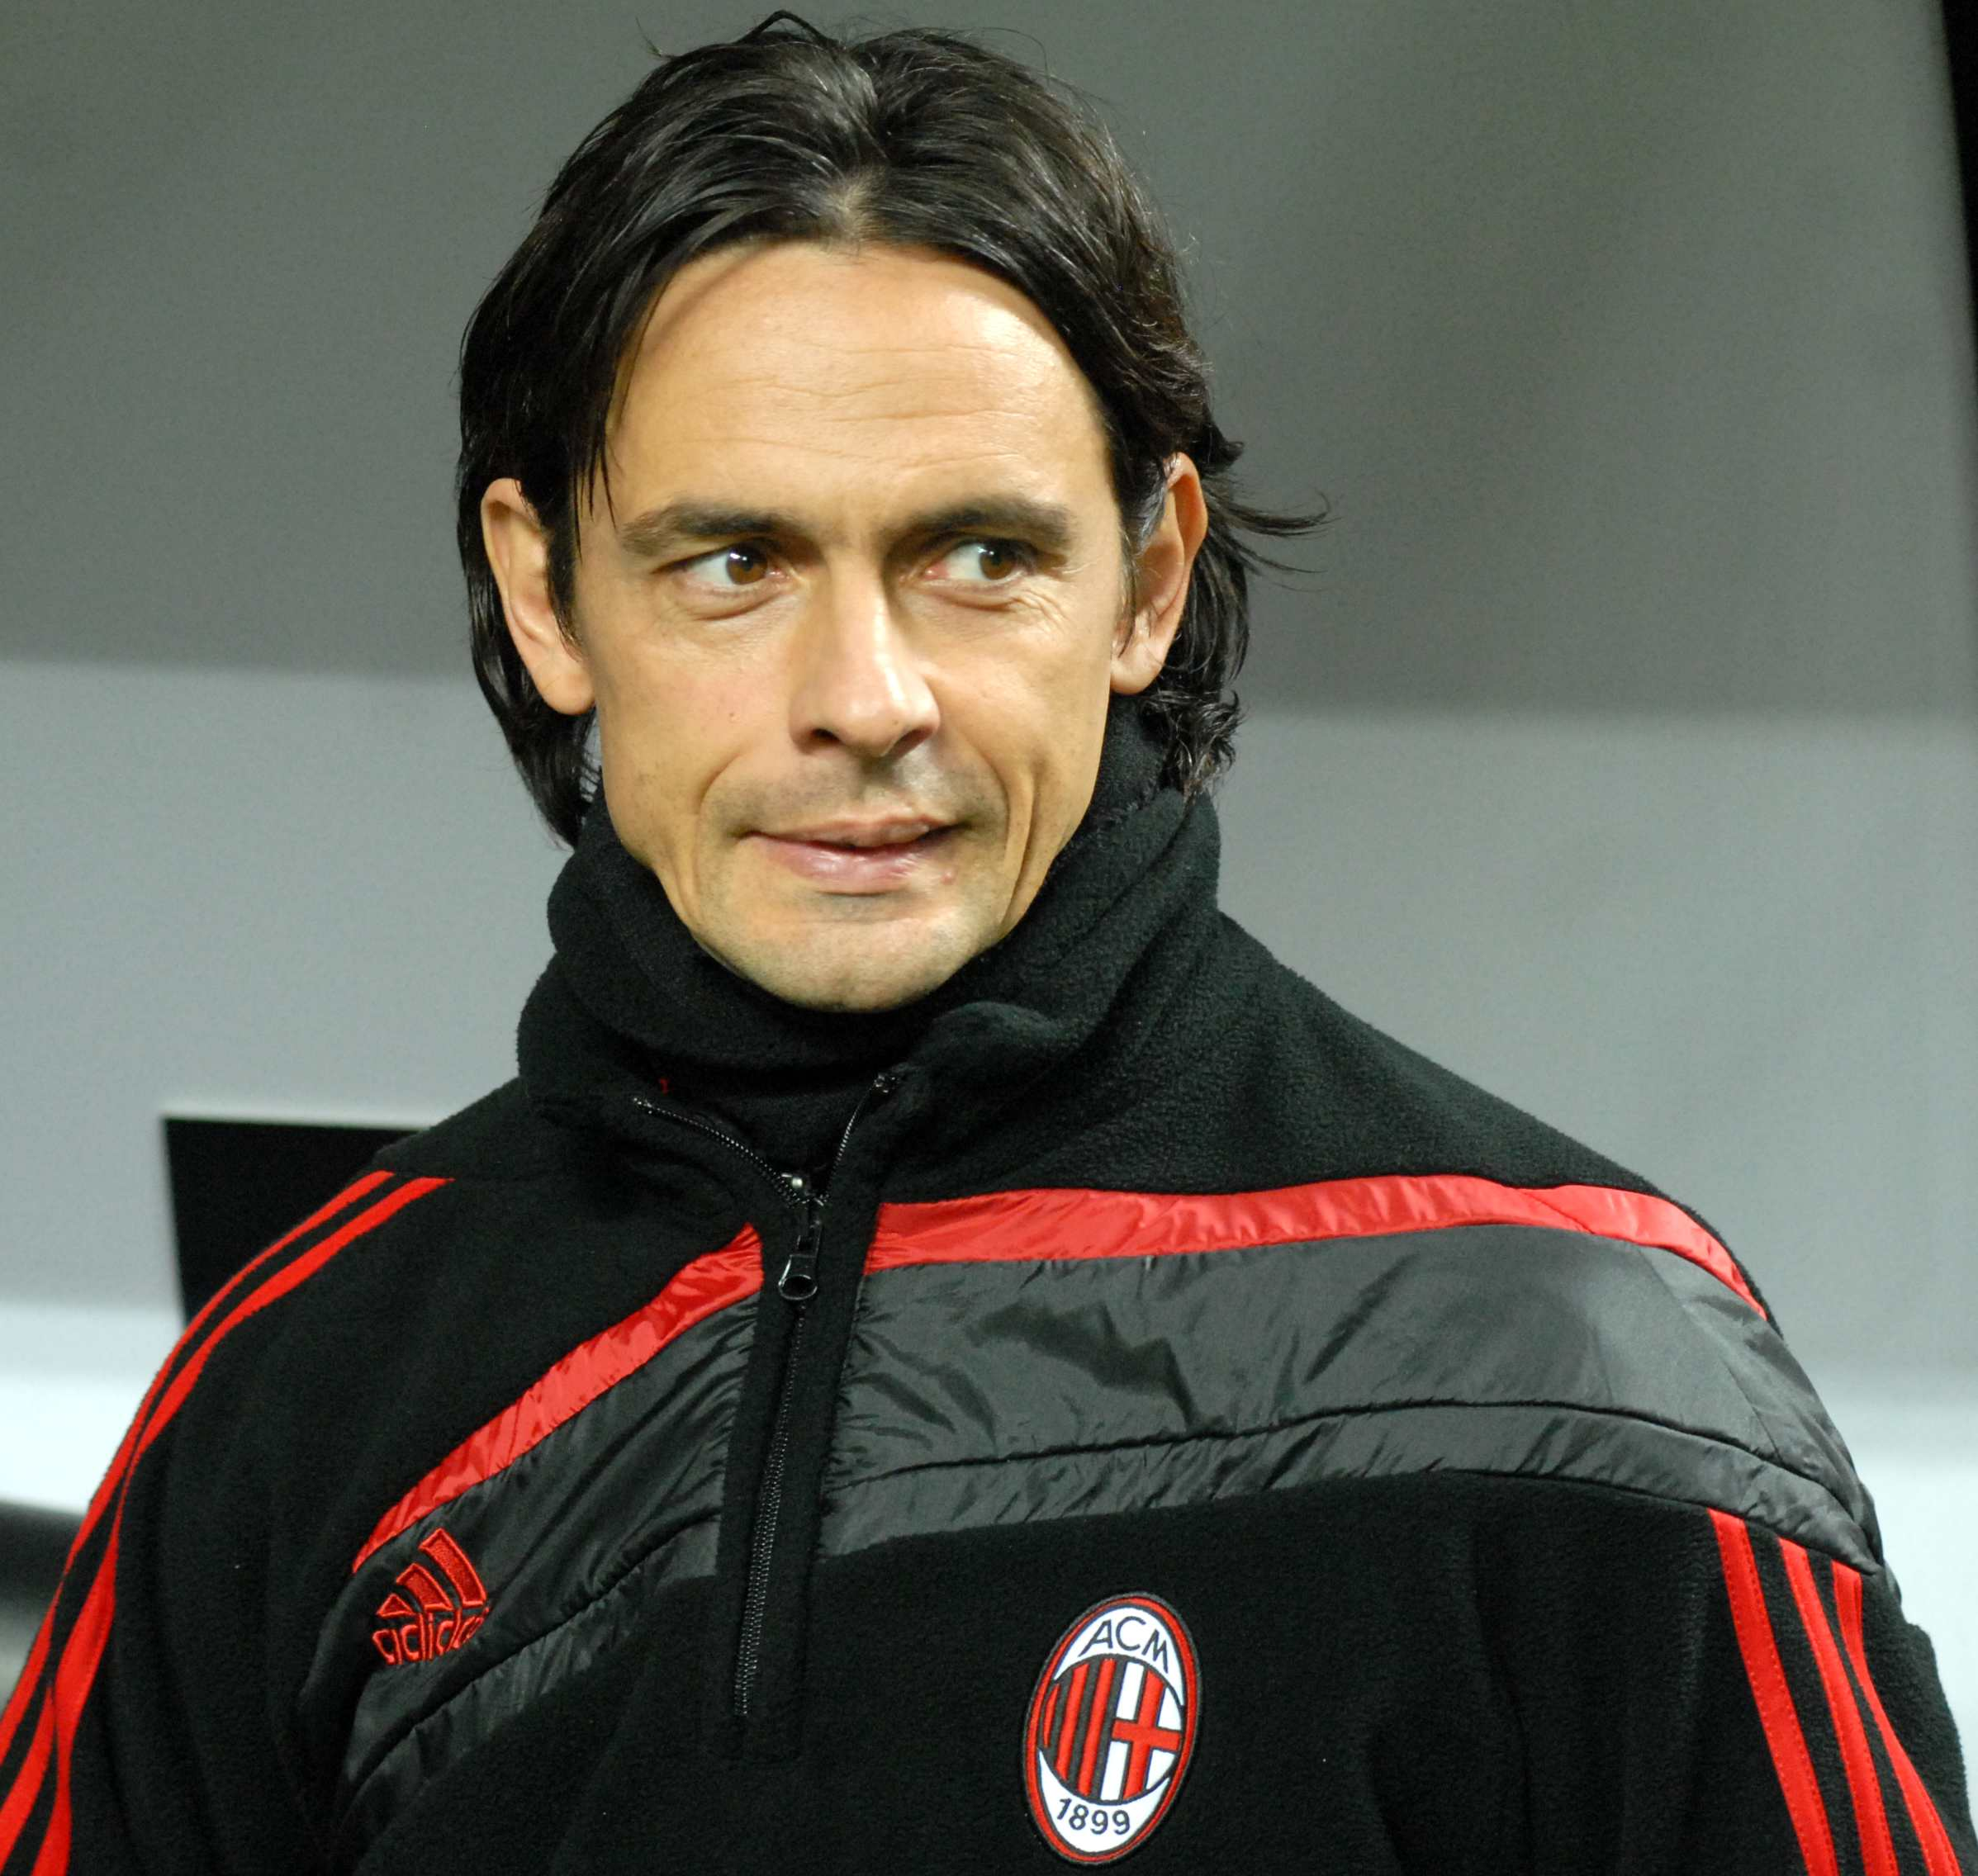 Filippo Inzaghi earned a 4 million dollar salary, leaving the net worth at 55 million in 2017